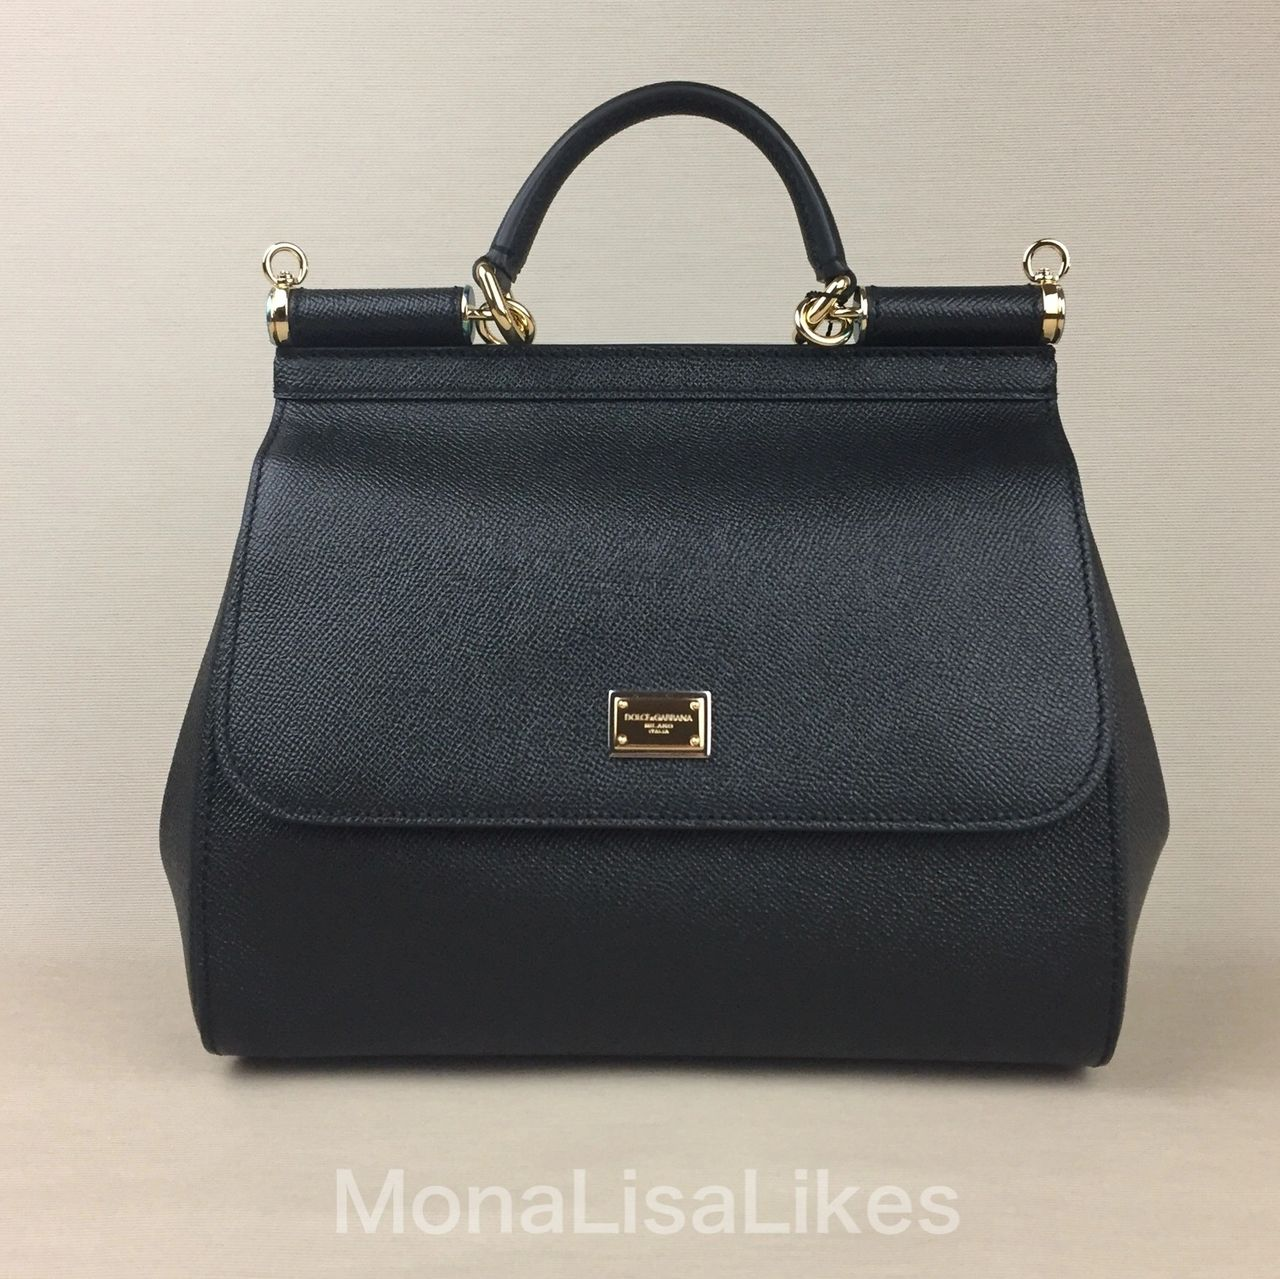 Classic DOLCE & GABBANA Miss Sicily bag in black Dauphine leather. It remains on market without major changes since early 2000-s